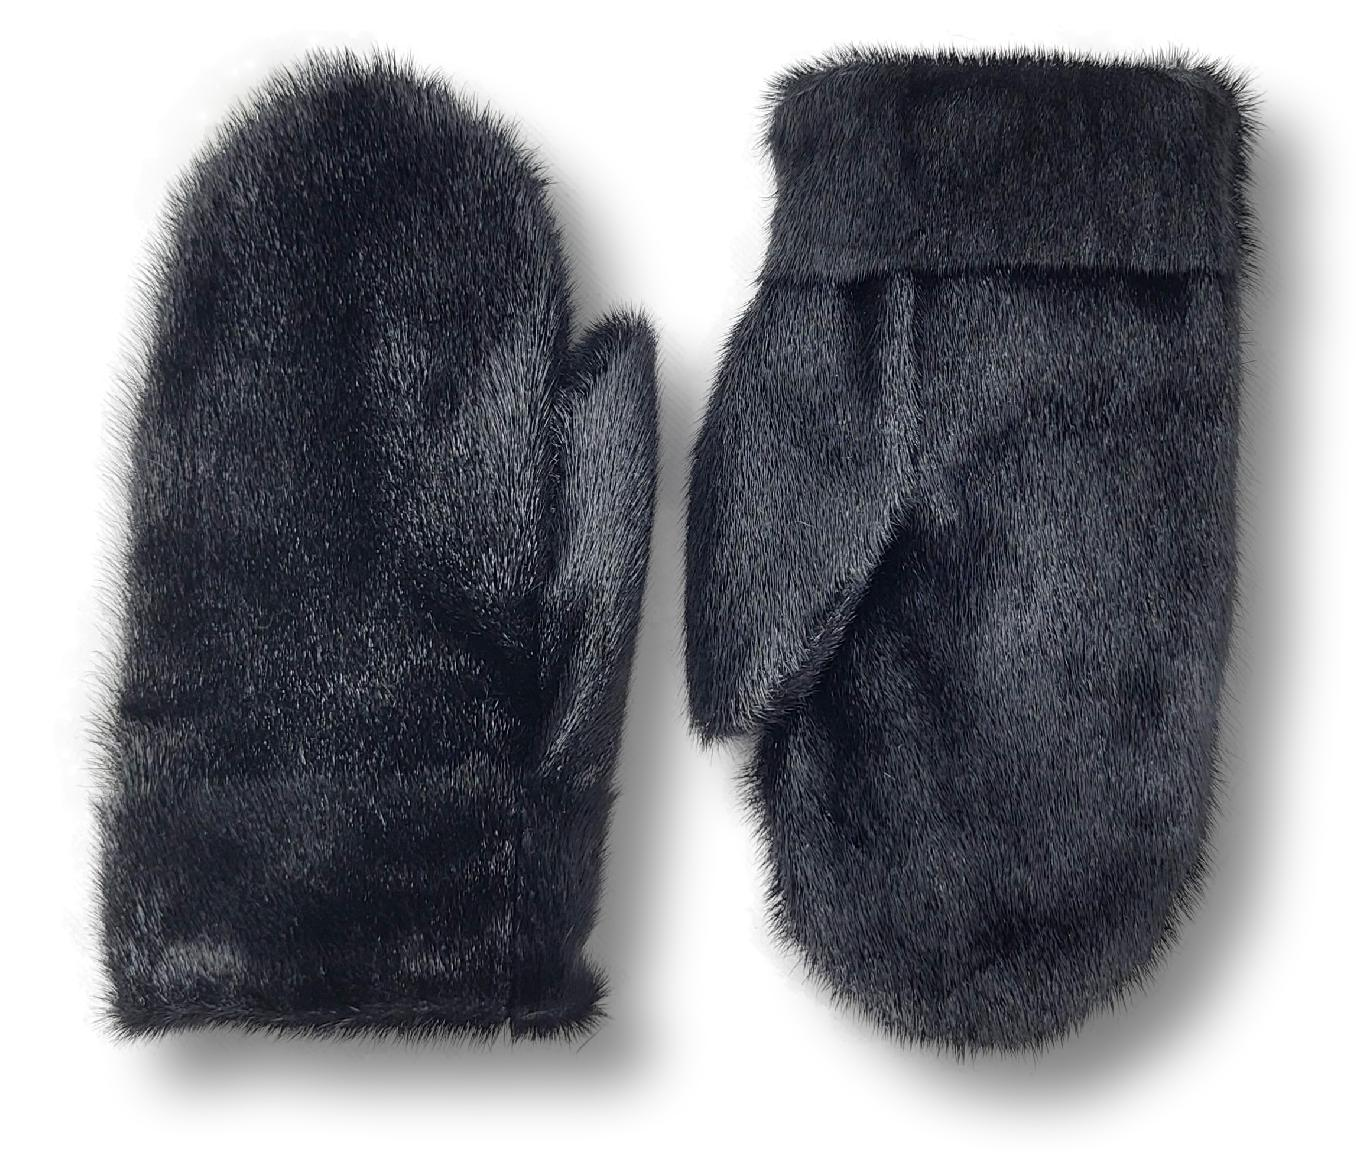 Mitten - Ringed Seal - Accesories - Black | STAMPE PELS